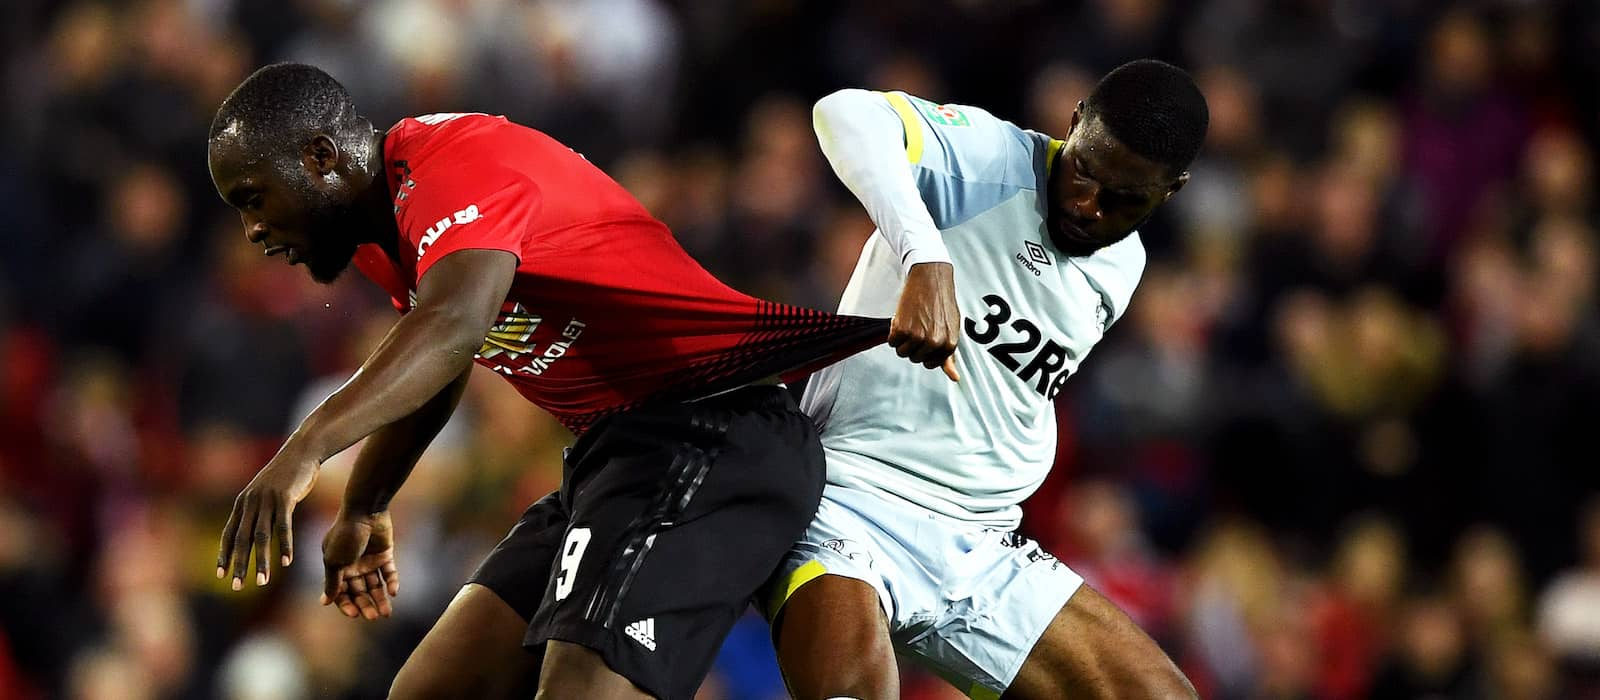 Manchester United fans frustrated with Romelu Lukaku's performance vs Derby